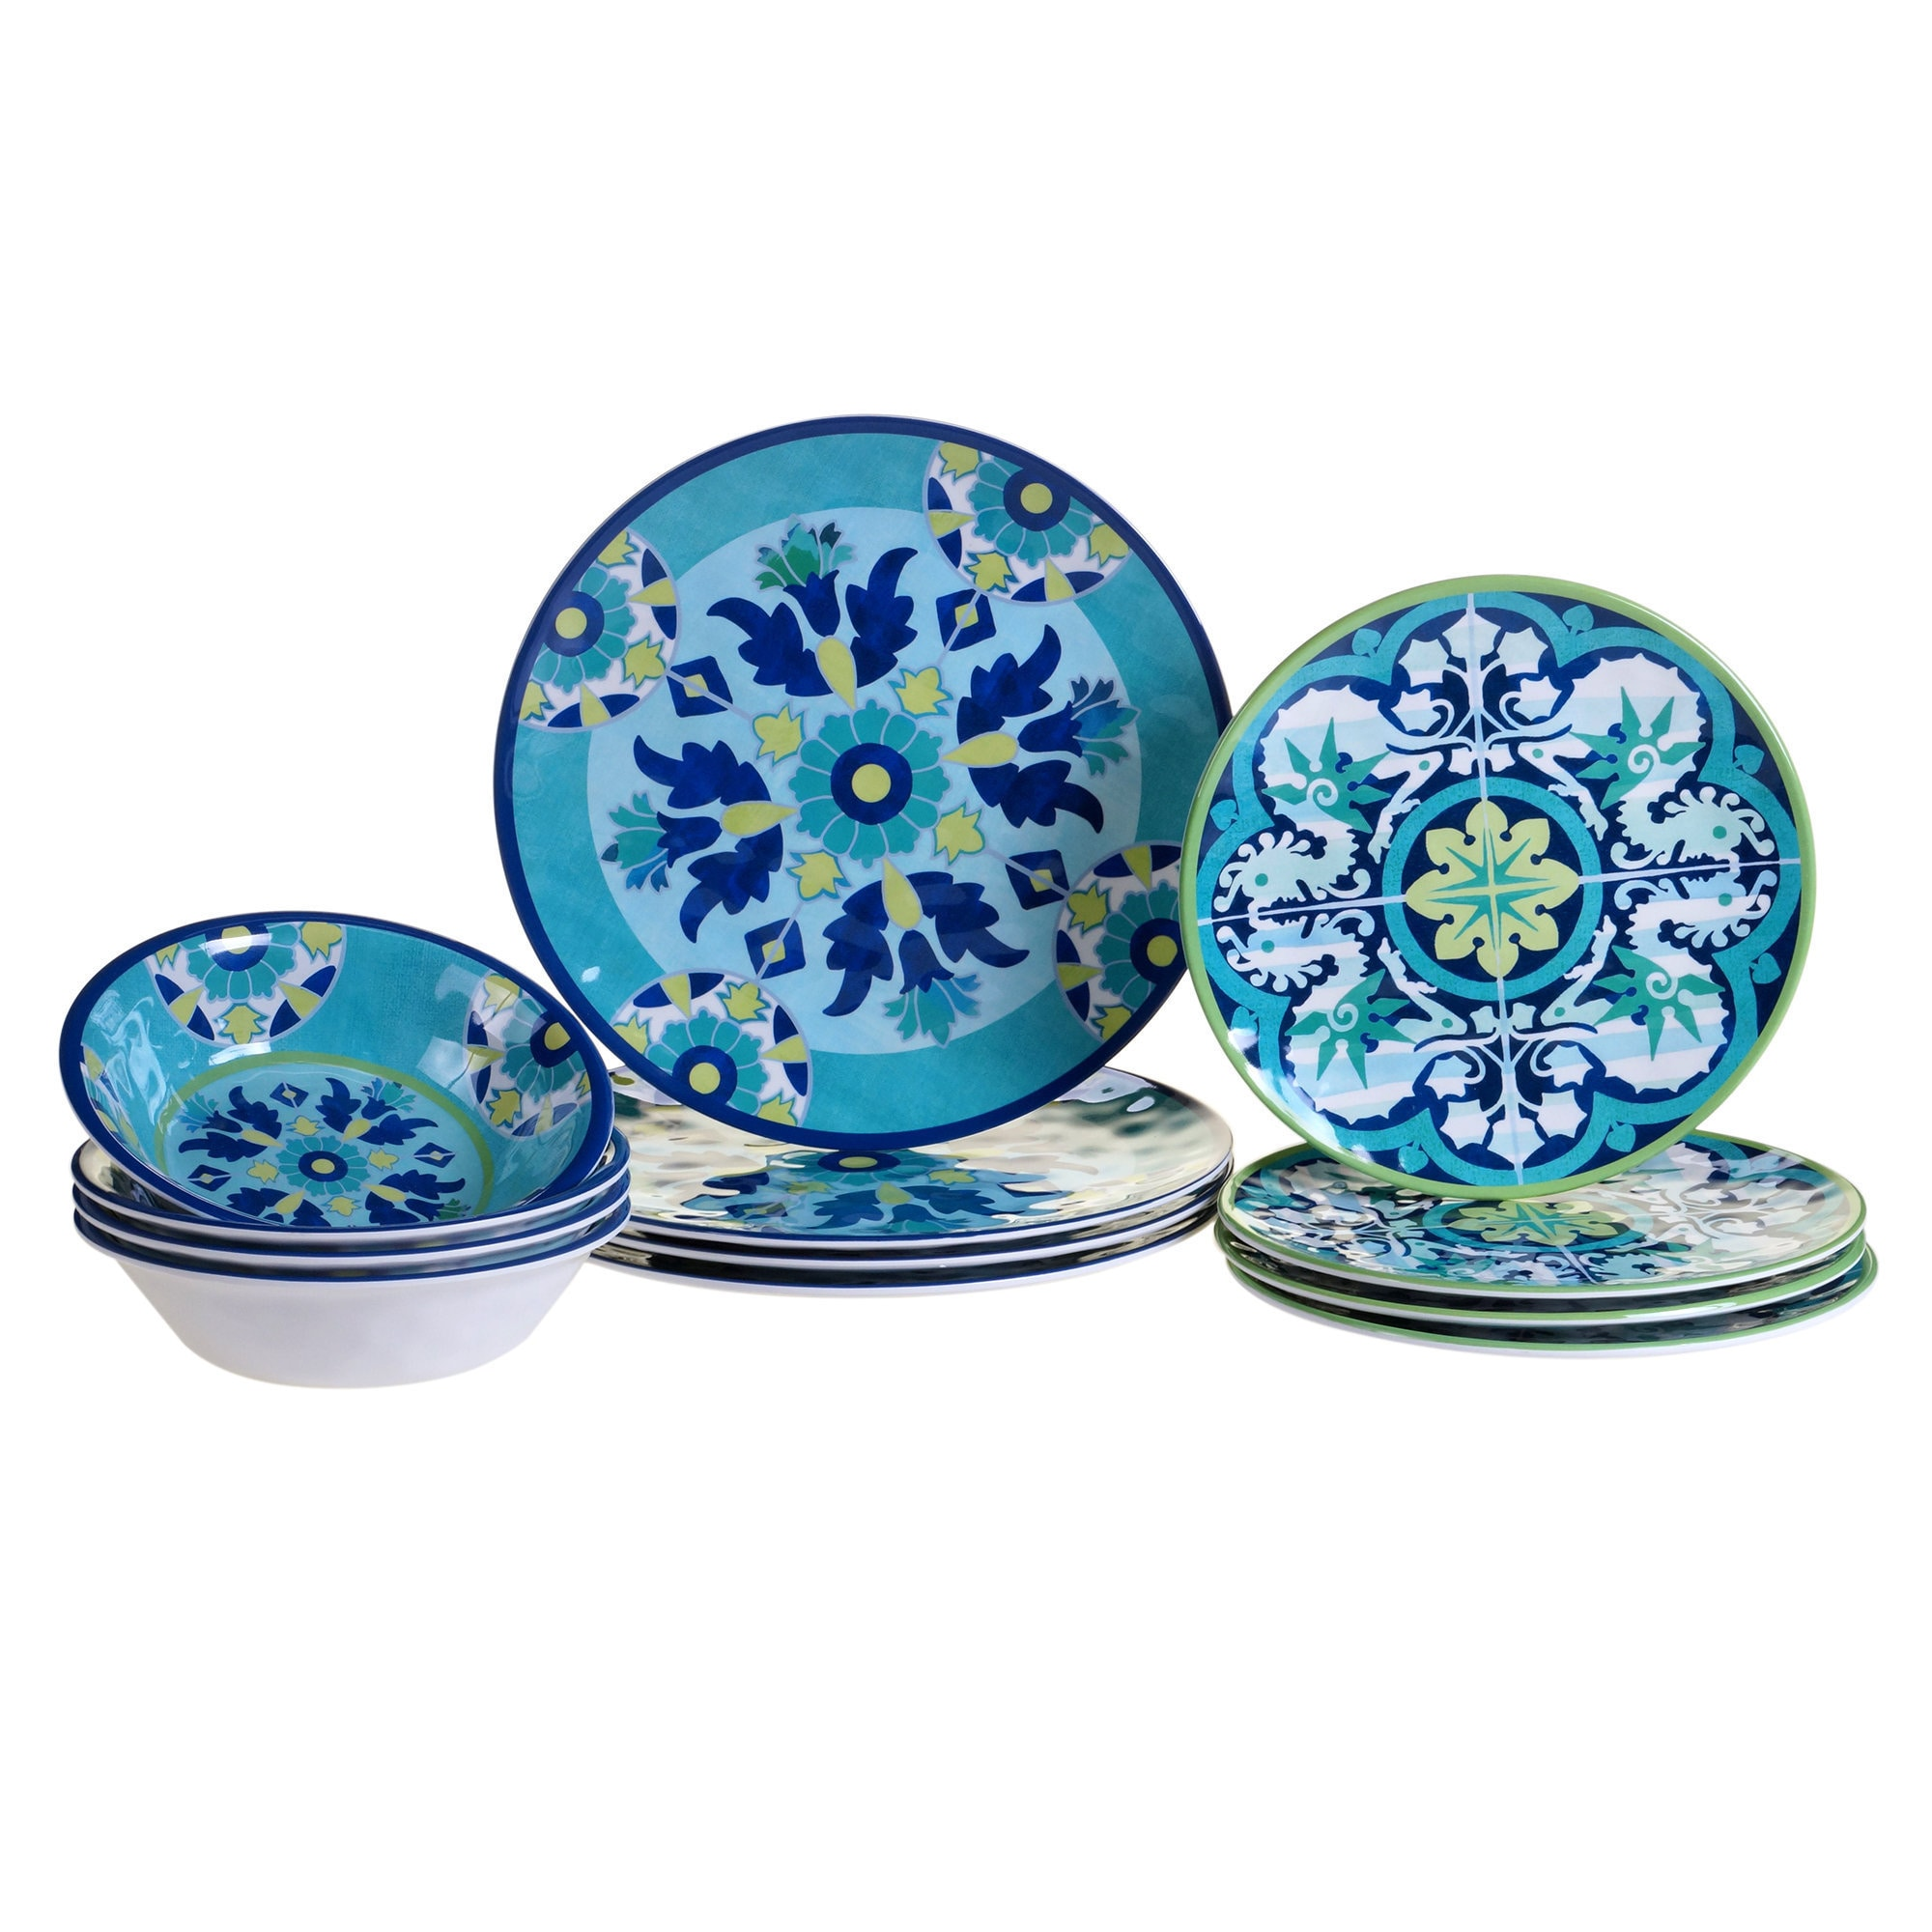 Blue Floral Dinnerware 12pcs Dining Set Summer Dinner Plates  sc 1 st  eBay & Blue Floral Dinnerware 12pcs Dining Set Summer Dinner Plates | eBay